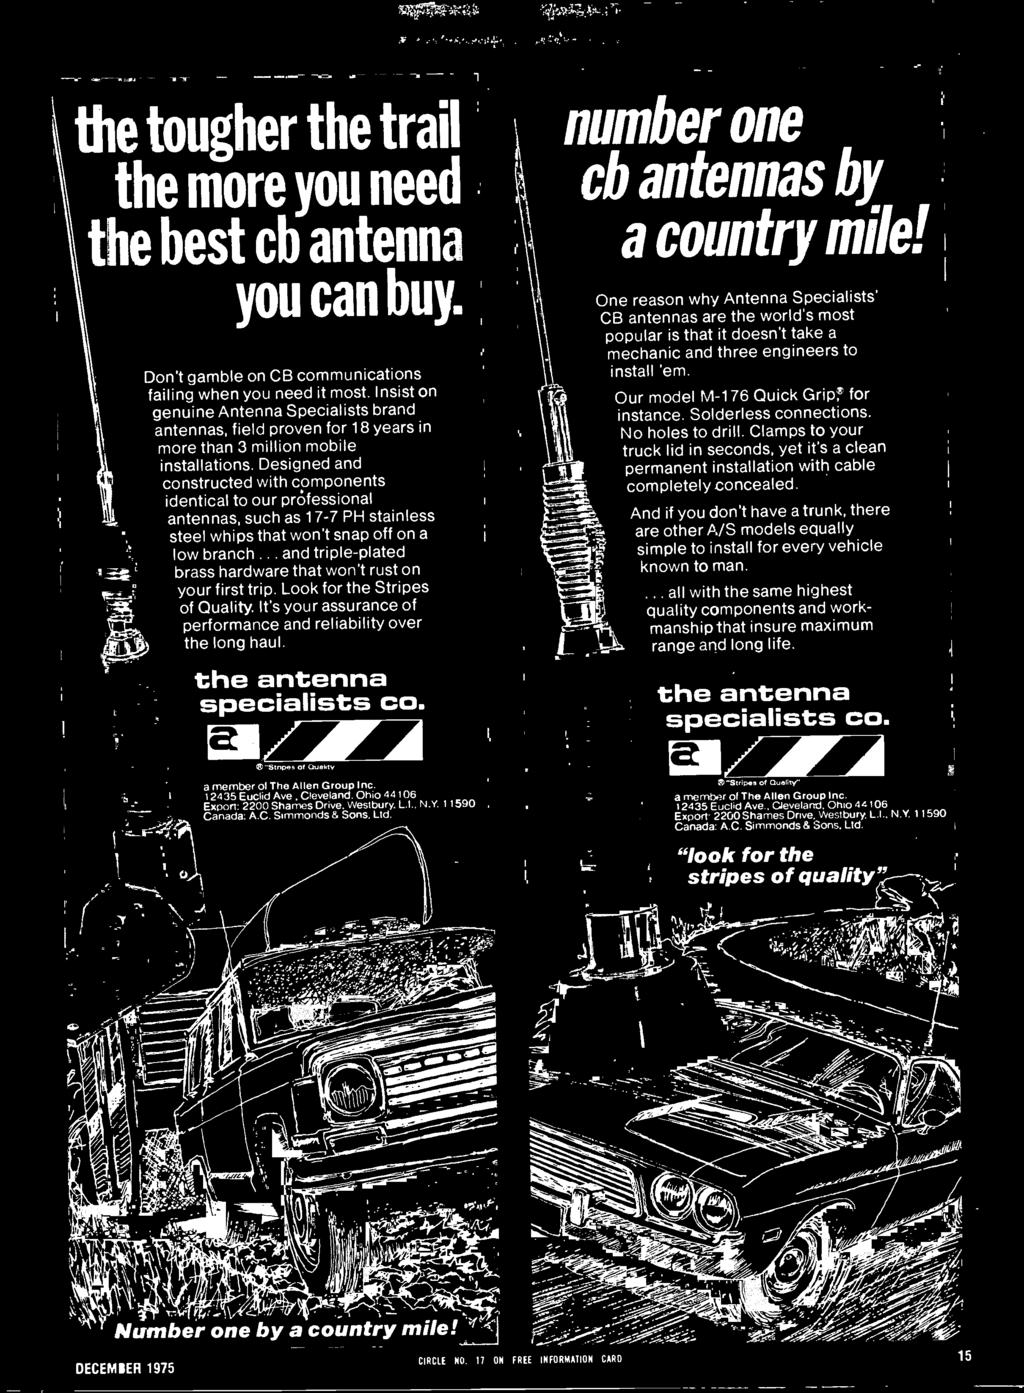 Turntable Iiecimiicus The 4 Hew Cassette Tapes7 Iiiirsch Hock Antenna Outdoor Pf Dgt 5000 Number One Cb Antennas By A Country Mil